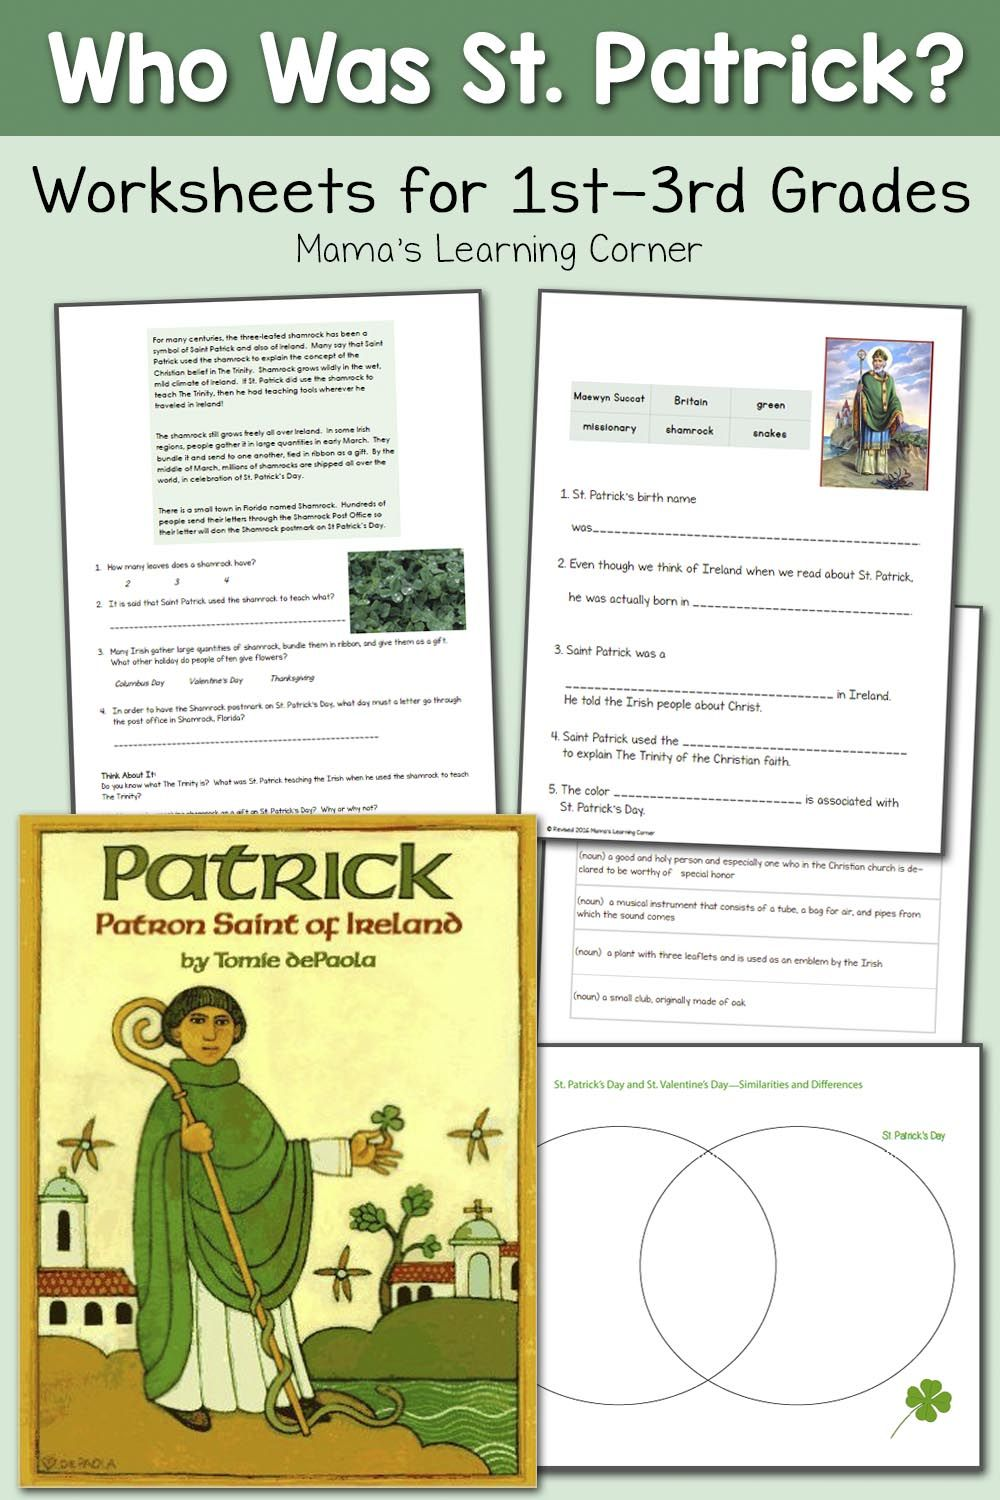 Saint Patrick Worksheets For 2nd 4th Graders St Patricks Activities St Patrick Day Activities St Patrick [ 1500 x 1000 Pixel ]